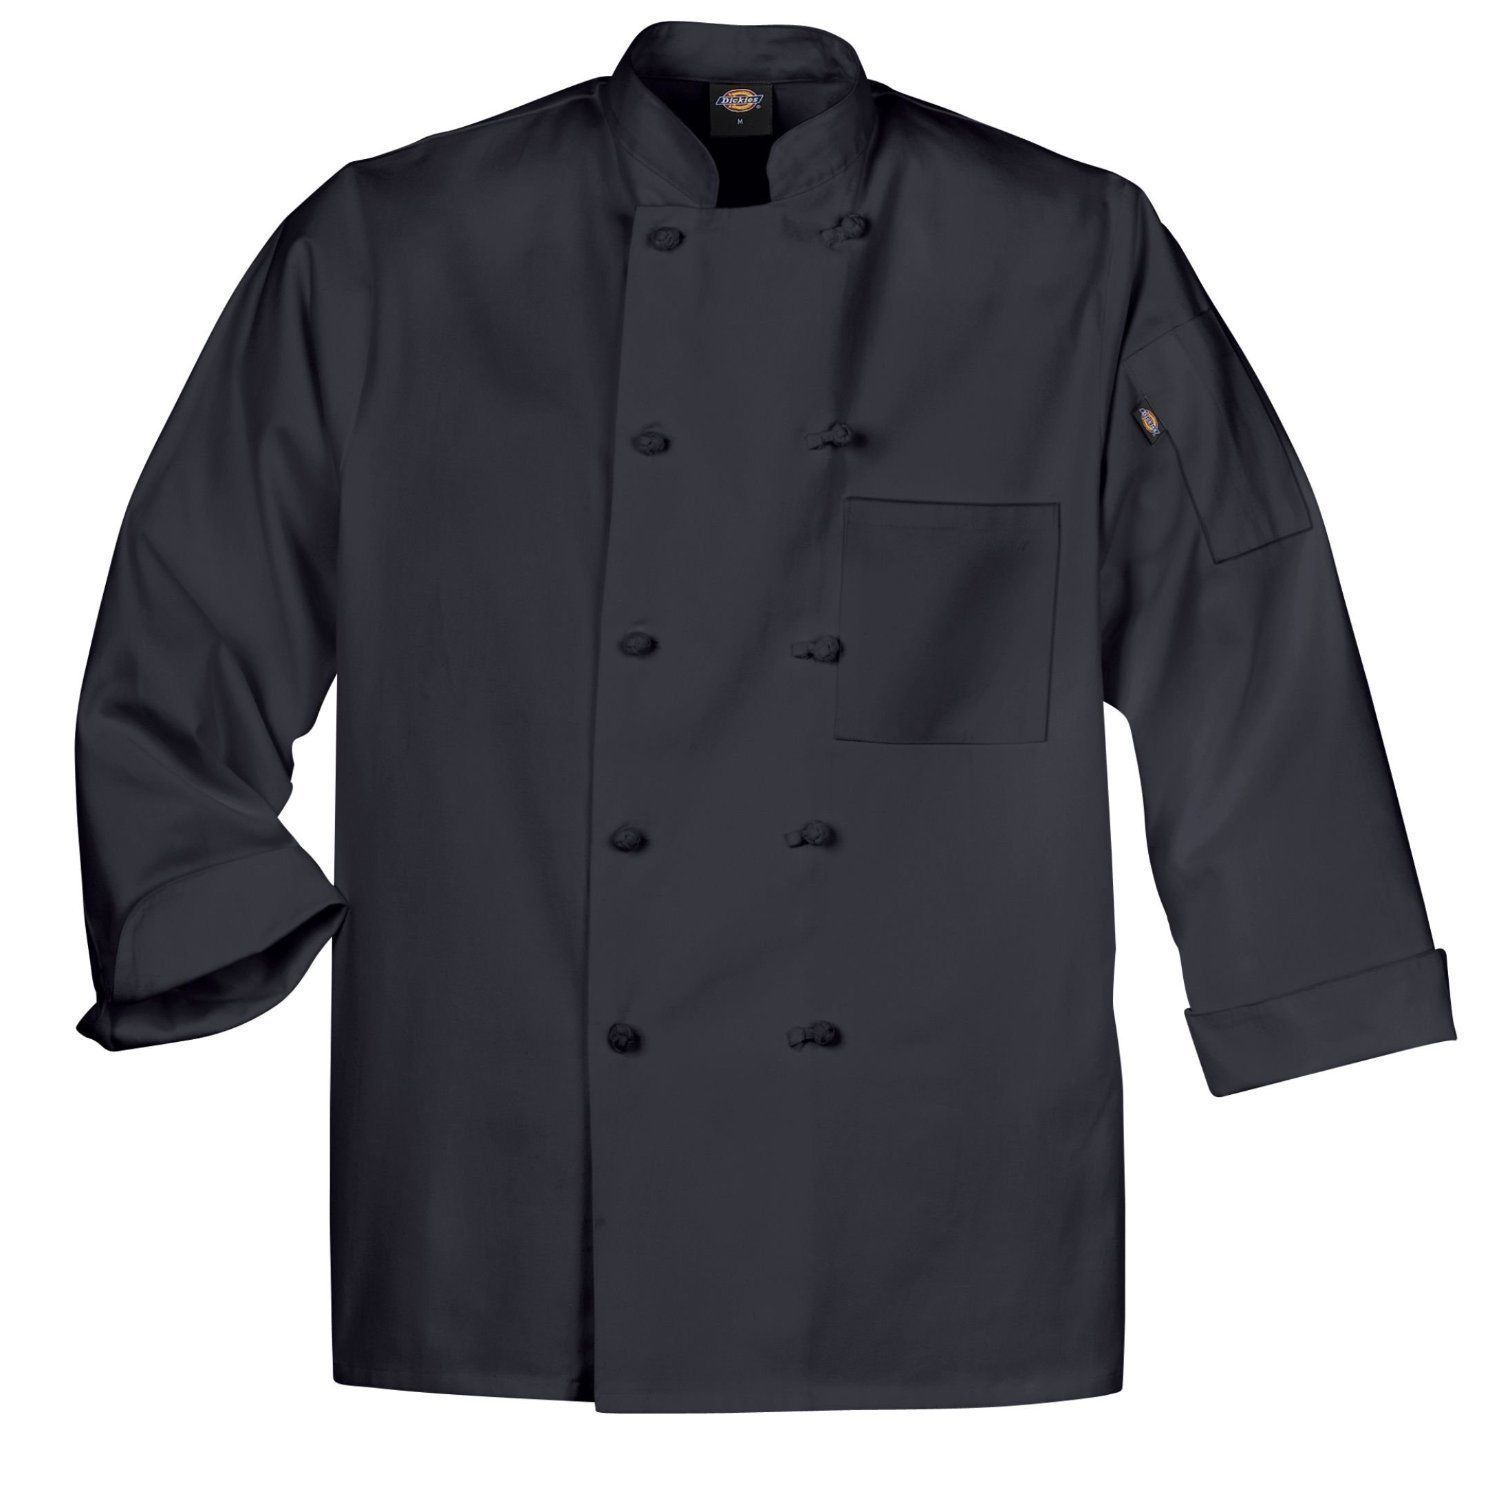 Dickies Chef Jacket 3XL DCP109 BLK Cloth Knot Button Black Uniform Coat New